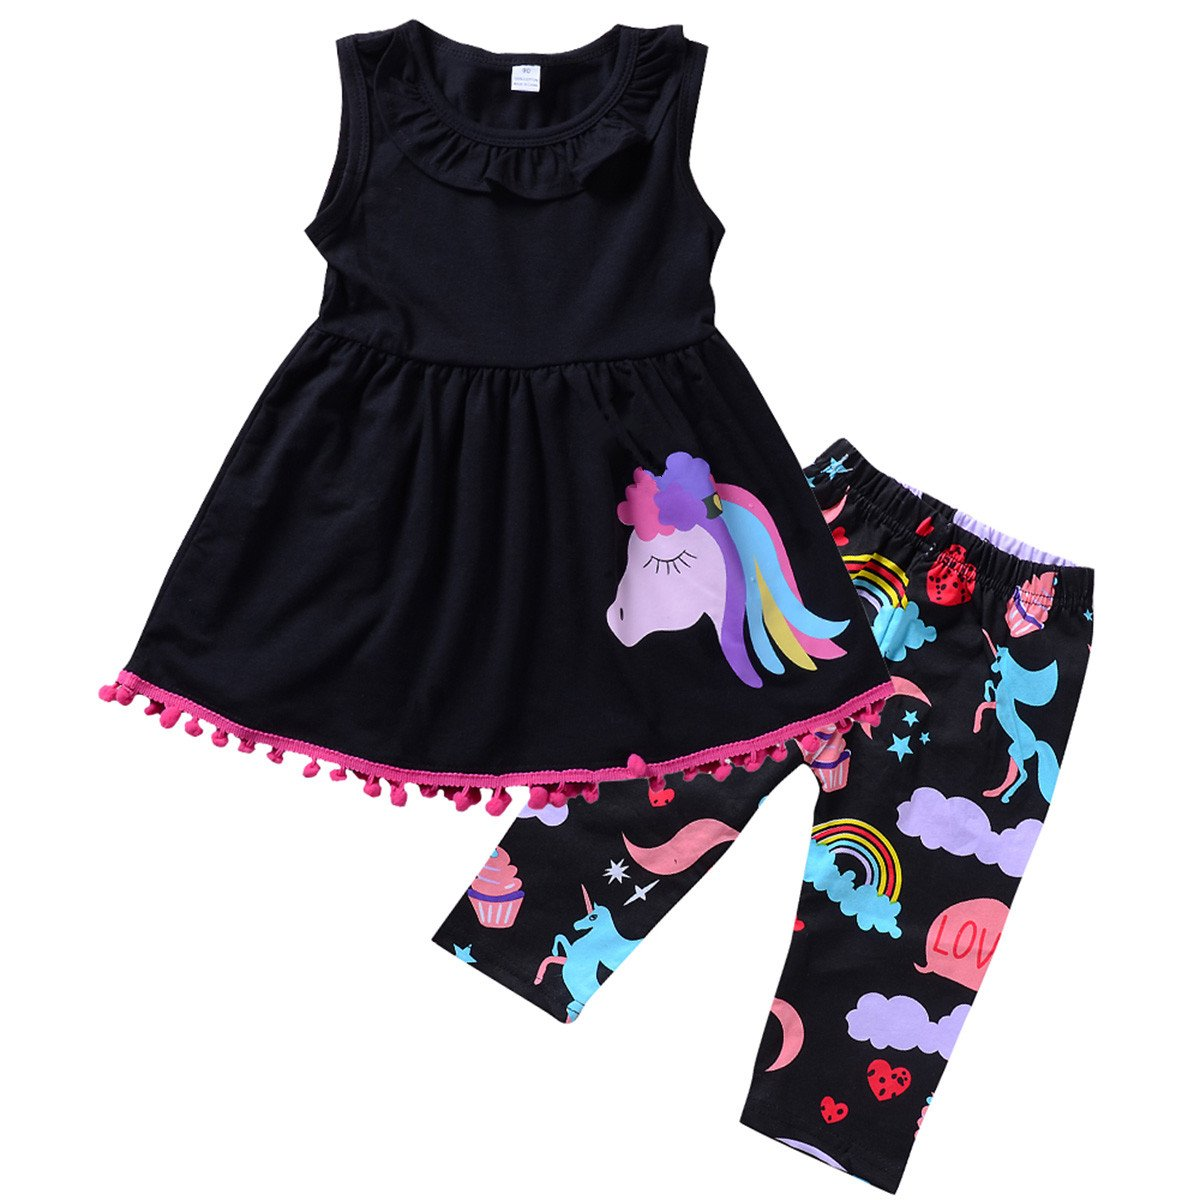 Ant-Kinds 2-7T Toddler Girls Pony Seeveless Shirt Tops + Cropped Pants Outfits Clothes Set(5-6T, Black)